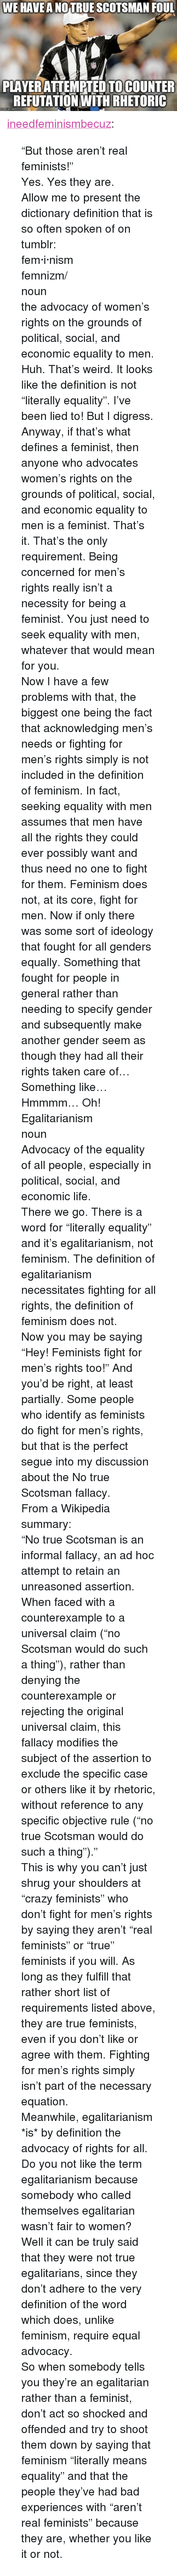 """Bad, Feminism, and Huh: WE HAVEA NOTRUE SCOTSMAN FOUL  PLAYER ATTEMPTED TOCOUNTER  REFUTATION WITH RHETORIC  atlip.com <p><a href=""""http://ineedfeminismbecuz.tumblr.com/post/124366255960/but-those-arent-real-feminists-yes-yes-they"""" class=""""tumblr_blog"""">ineedfeminismbecuz</a>:</p>  <blockquote><p>""""But those aren't real feminists!"""" <br/> Yes. Yes they are.<br/> Allow me to present the dictionary definition that is so often spoken of on tumblr:</p>  <p>fem·i·nism<br/> ˈfeməˌnizəm/<br/> noun<br/> the advocacy of women's rights on the grounds of political, social, and economic equality to men.</p>  <p>Huh. That's weird. It looks like the definition is not """"literally equality"""". I've been lied to! But I digress. Anyway, if that's what defines a feminist, then anyone who advocates women's rights on the grounds of political, social, and economic equality to men is a feminist. That's it. That's the only requirement. Being concerned for men's rights really isn't a necessity for being a feminist. You just need to seek equality with men, whatever that would mean for you. </p>  Now I have a few problems with that, the biggest one being the fact that acknowledging men's needs or fighting for men's rights simply is not included in the definition of feminism. In fact, seeking equality with men assumes that men have all the rights they could ever possibly want and thus need no one to fight for them. Feminism does not, at its core, fight for men. Now if only there was some sort of ideology that fought for all genders equally. Something that fought for people in general rather than needing to specify gender and subsequently make another gender seem as though they had all their rights taken care of… Something like… Hmmmm… Oh!  <p>Egalitarianism <br/>noun <br/>Advocacy of the equality of all people, especially in political, social, and economic life.</p>  <p>There we go. There is a word for """"literally equality"""" and it's egalitarianism, not feminism. The definition of egalitarianism necessi"""